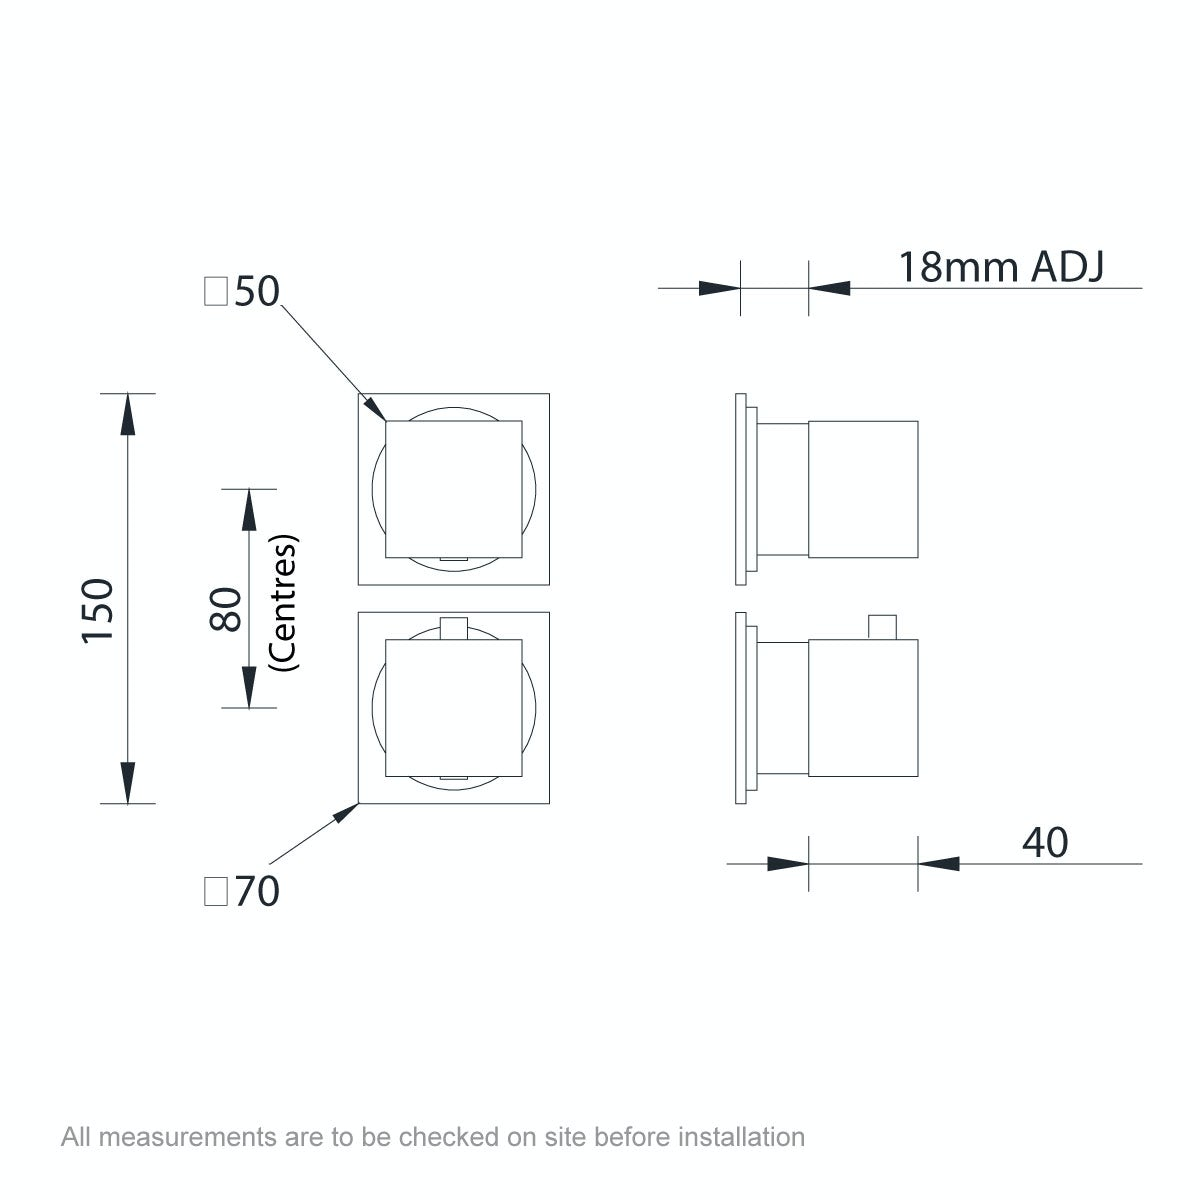 Dimensions for Mode Cooper square twin thermostatic shower valve with diverter